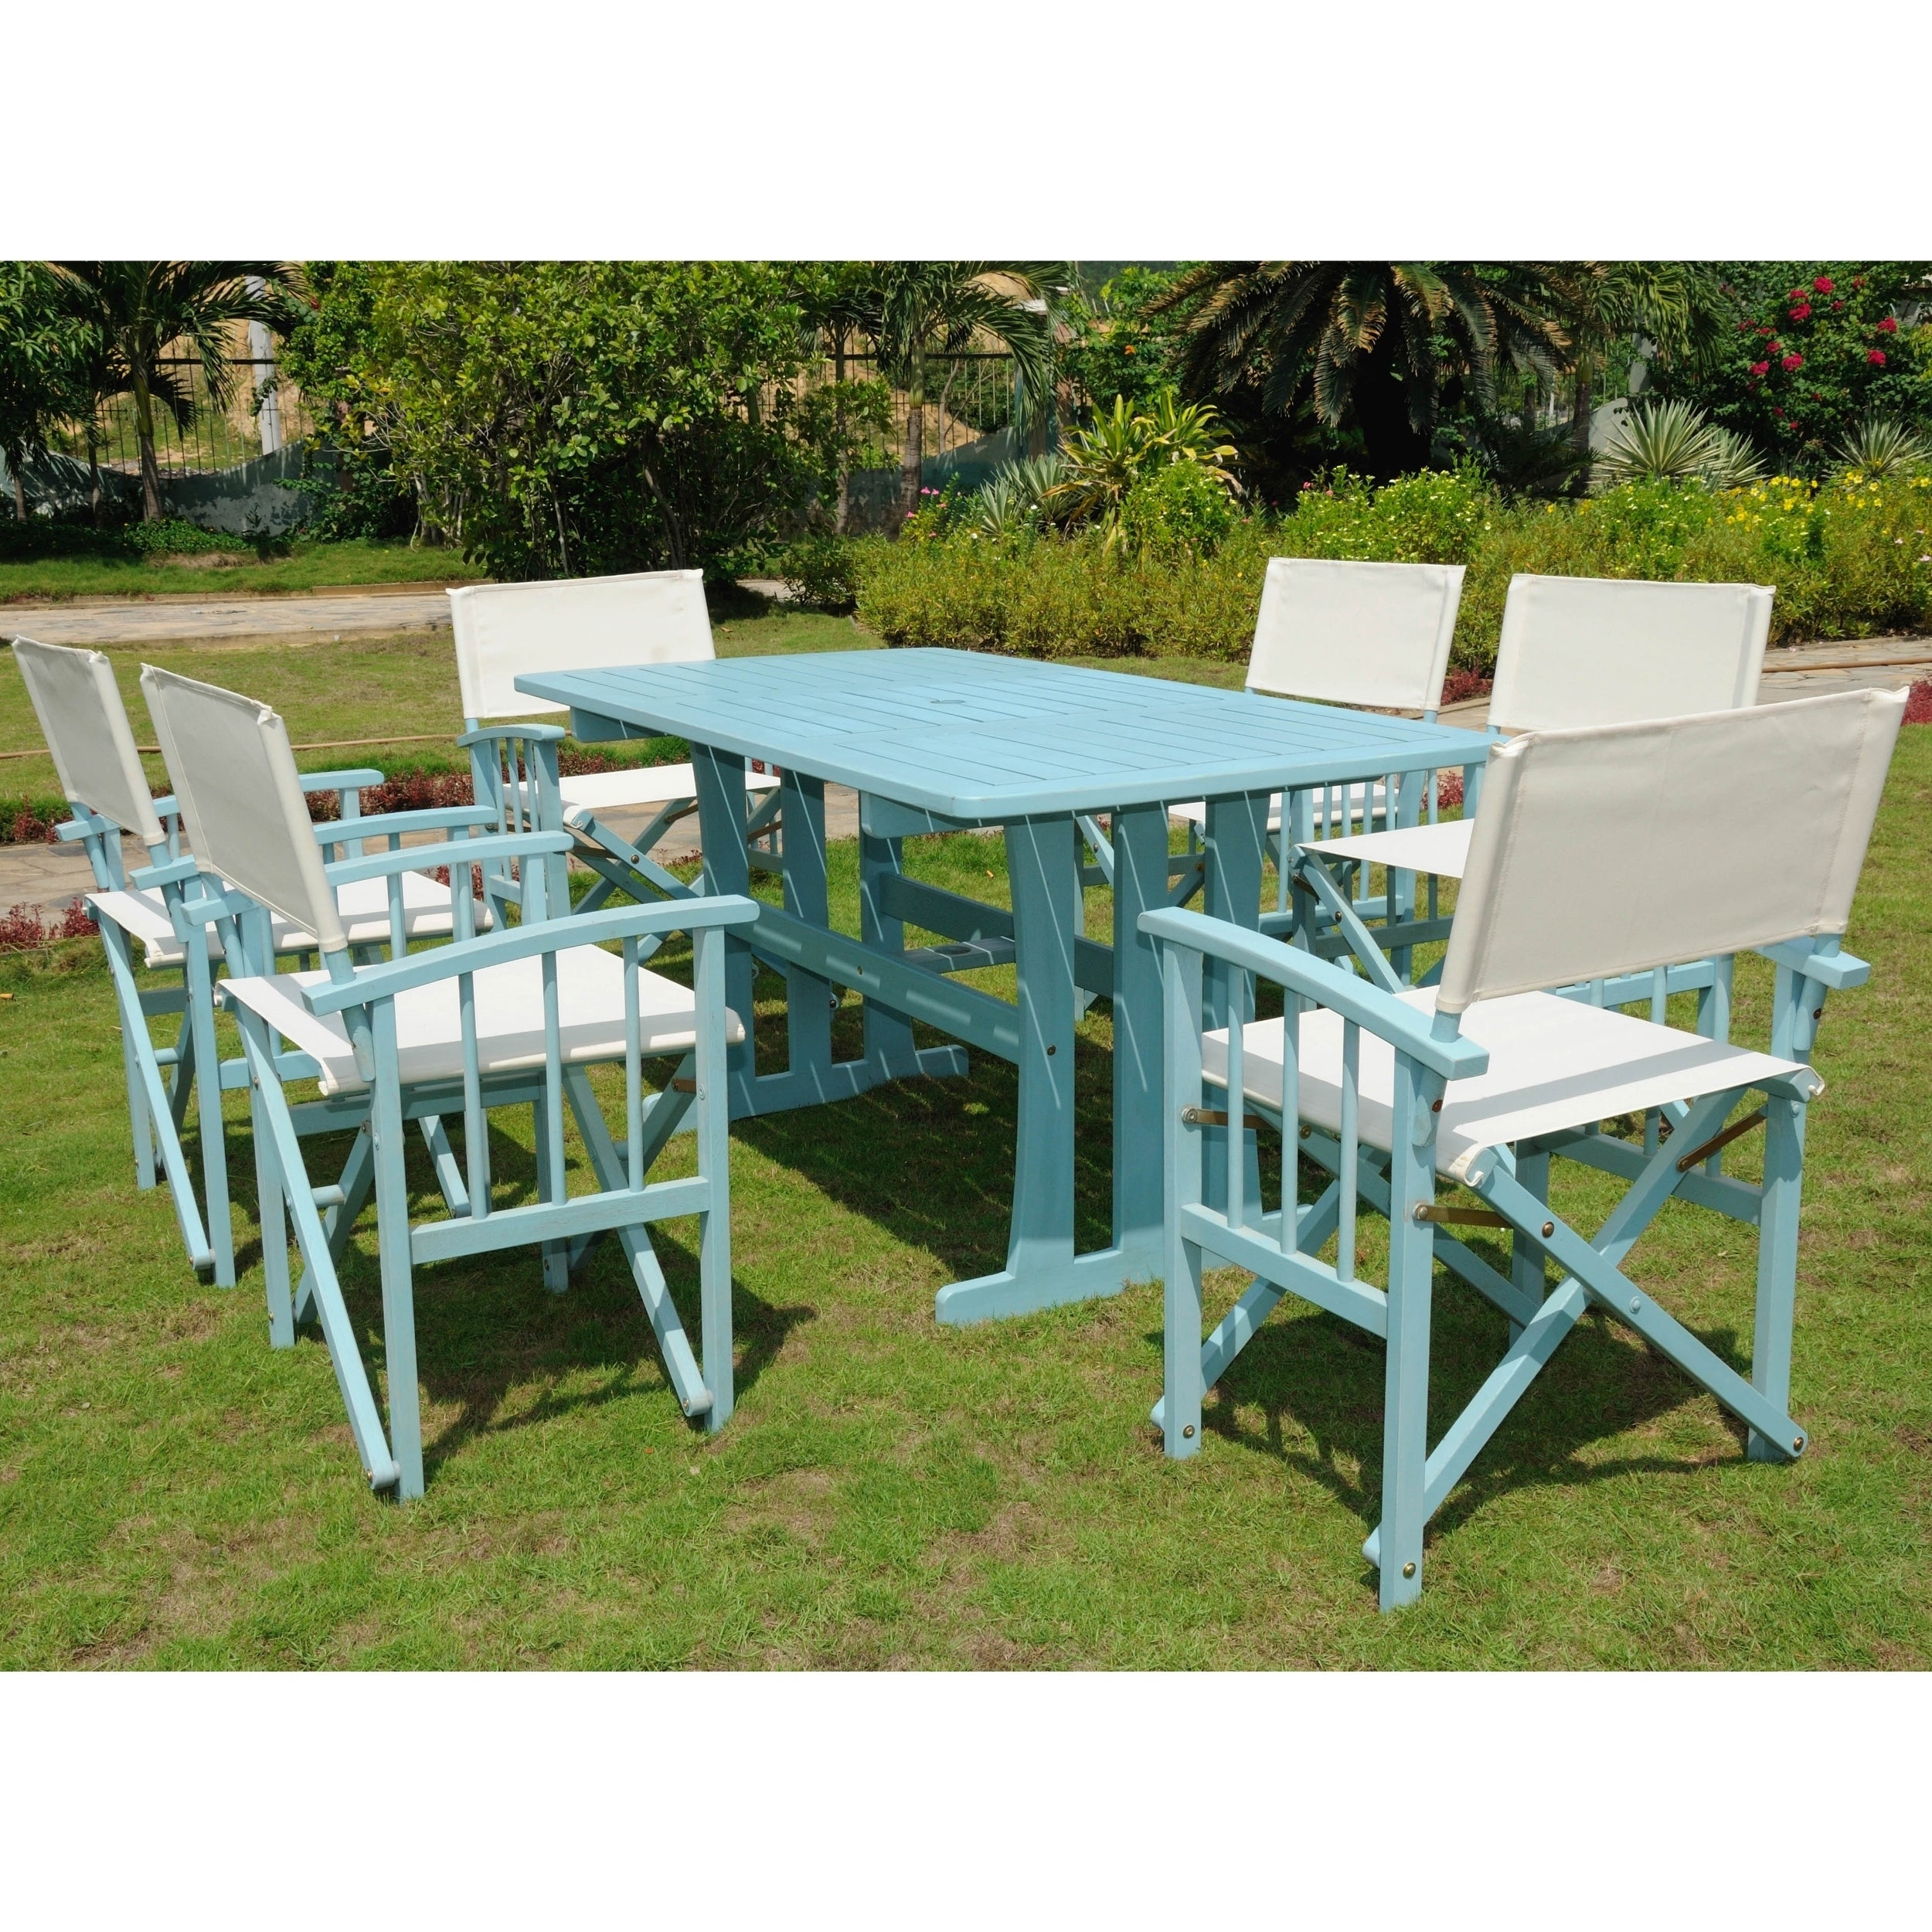 Red, Wood Patio Furniture   Find Great Outdoor Seating & Dining ...